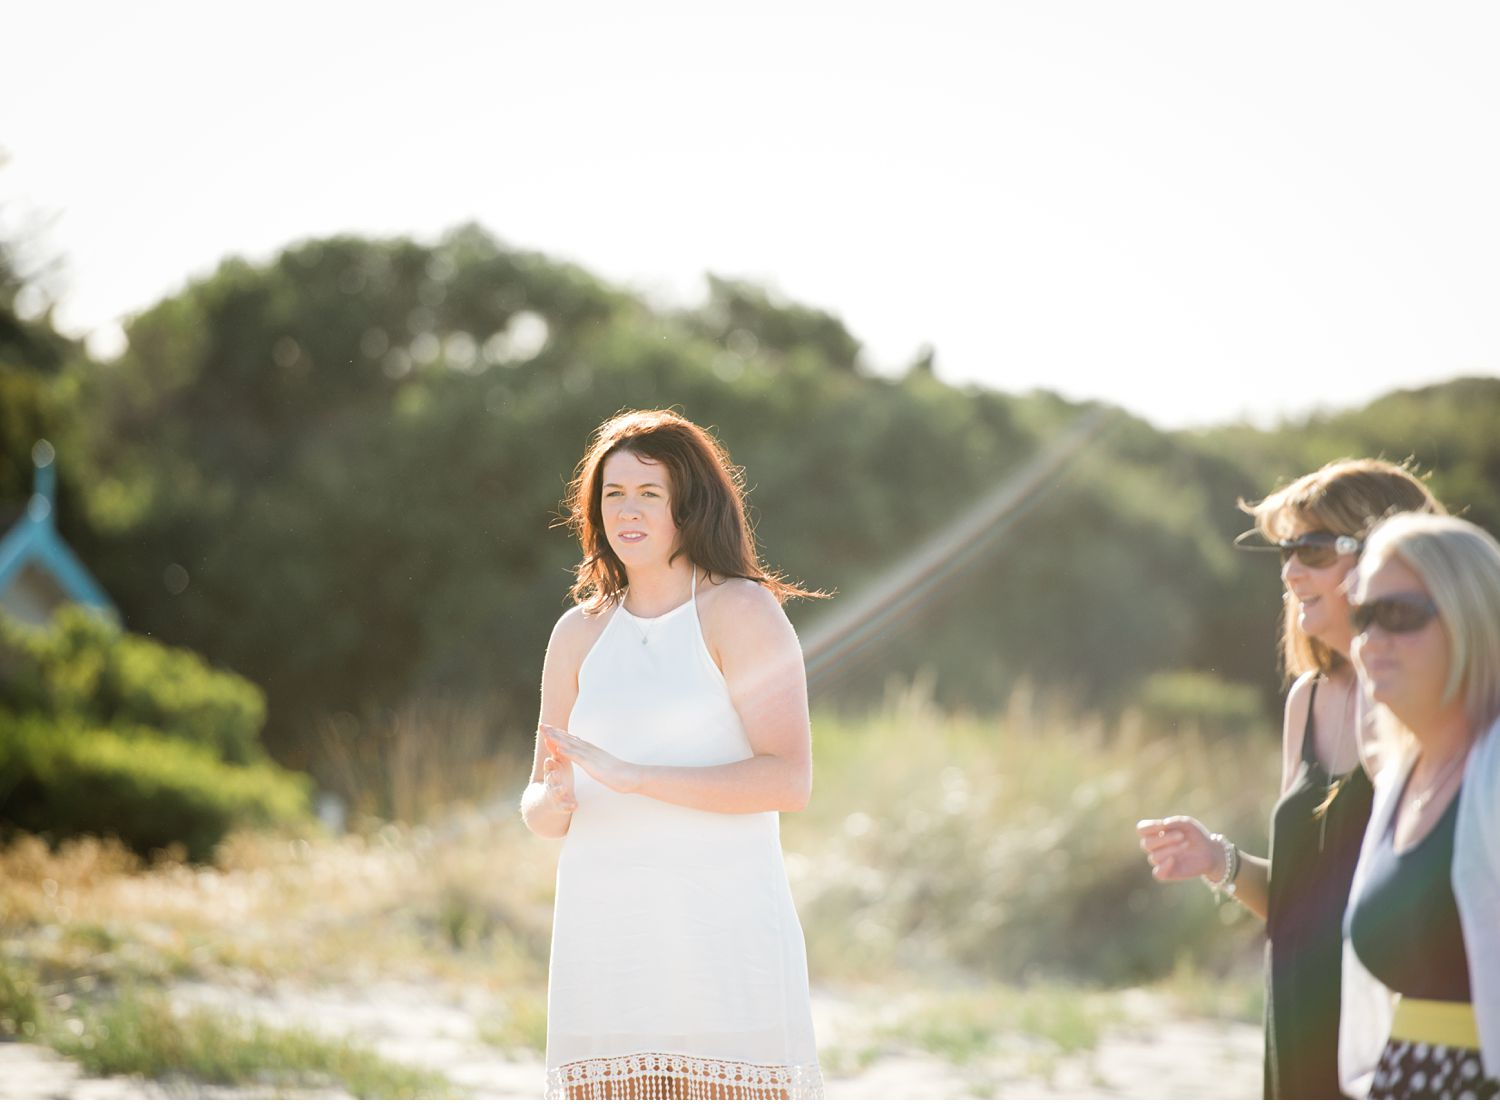 bec-stewart-photography-extended-family-photography-session-melbourne-australia-city-of-casey-35.jpg